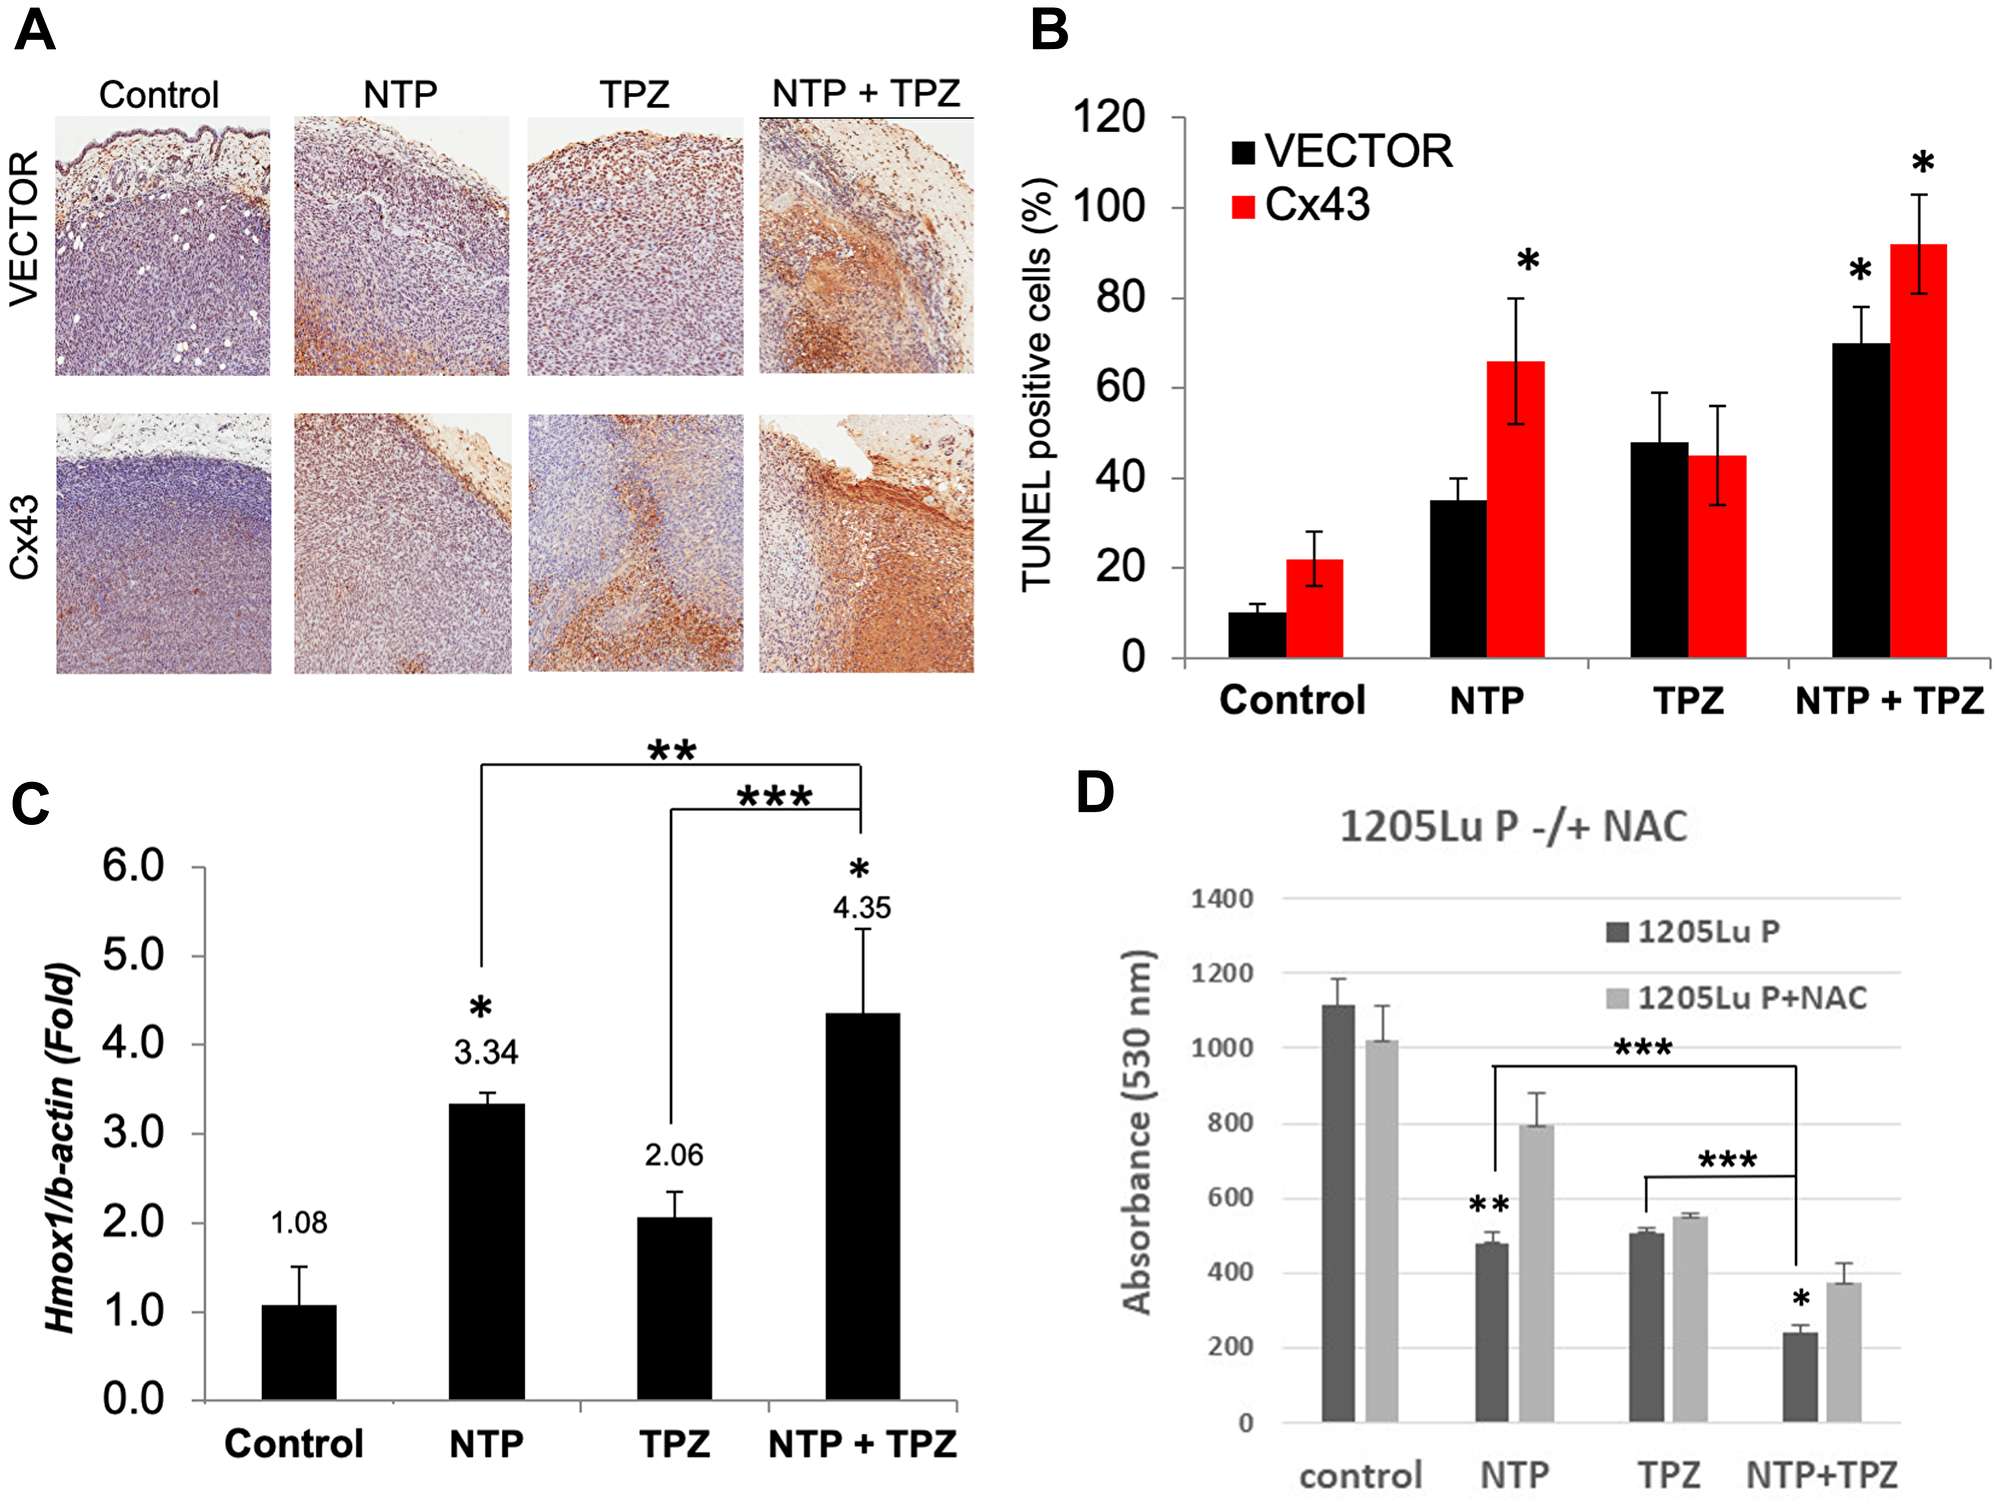 Analysis of apoptosis and oxidative stress on in vivo treatment with NTP+TPZ.